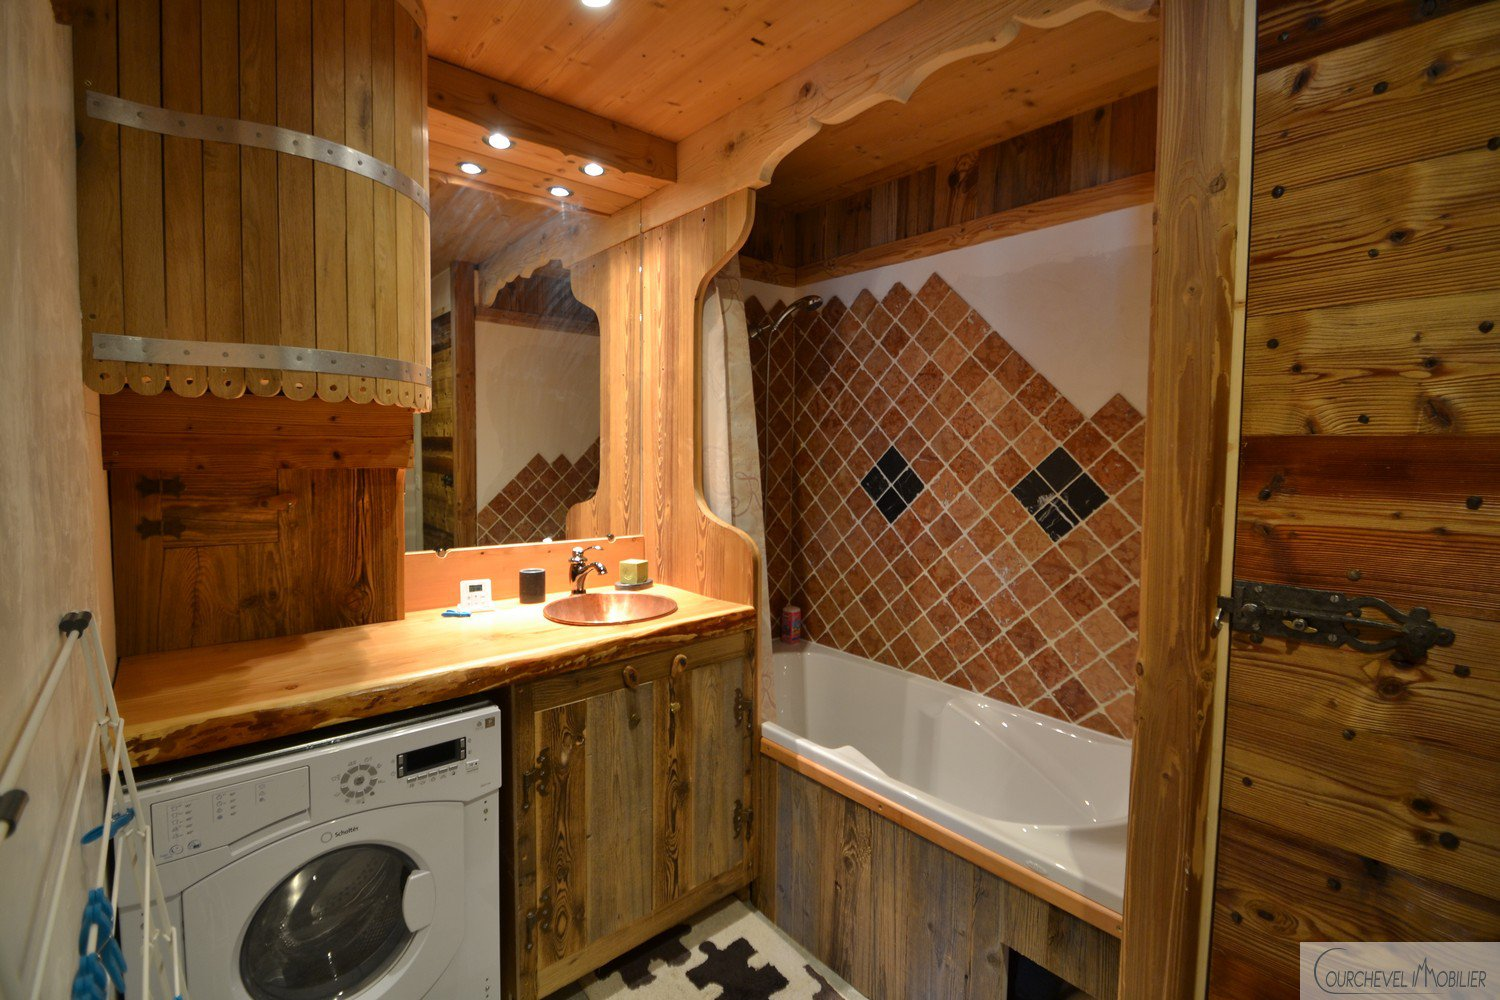 Pleasant apartment - Courchevel Moriond